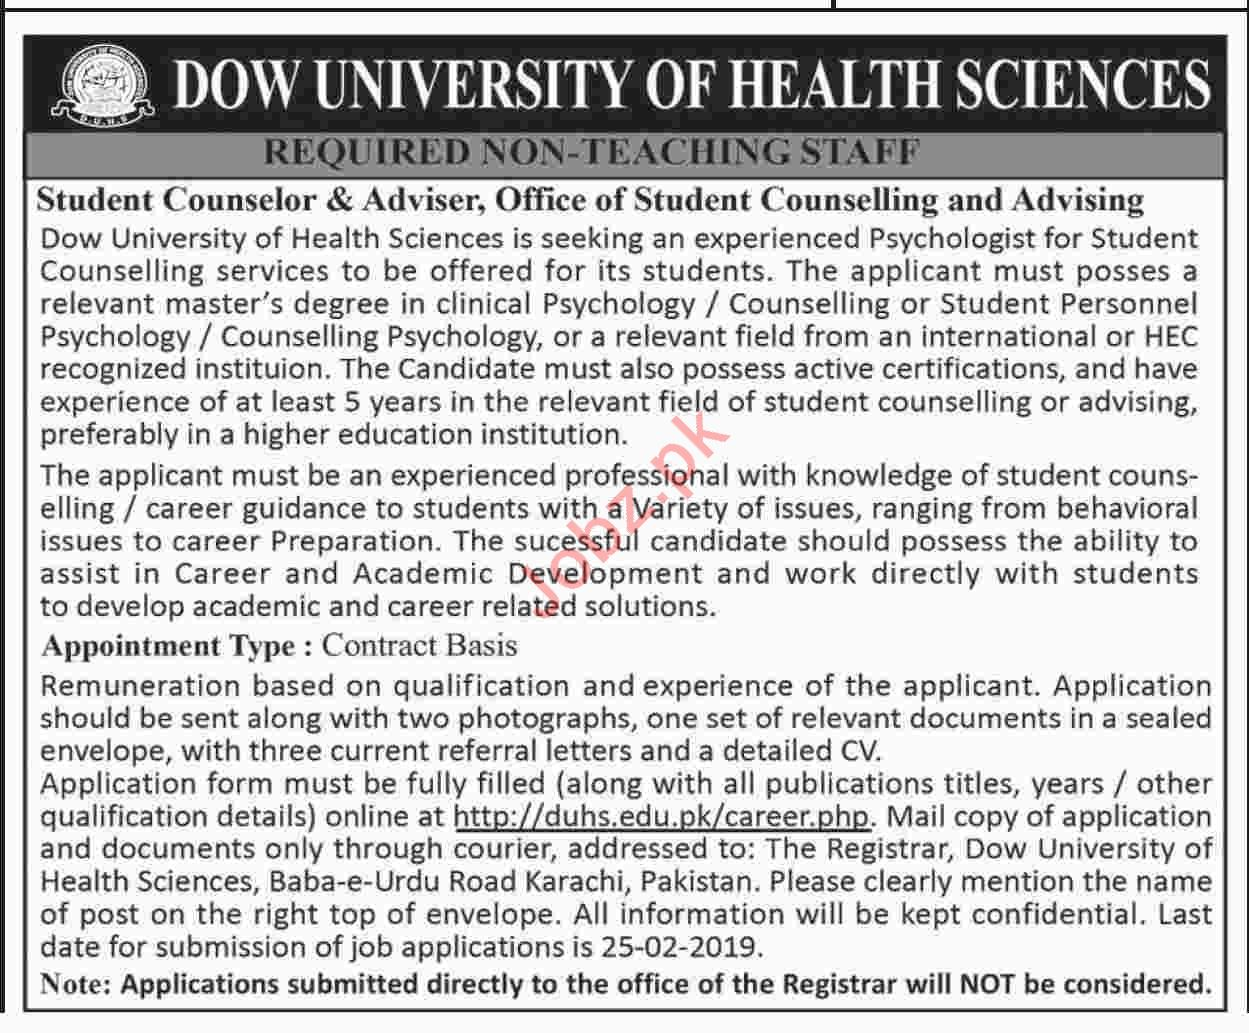 Student Counselor Jobs at Dow University